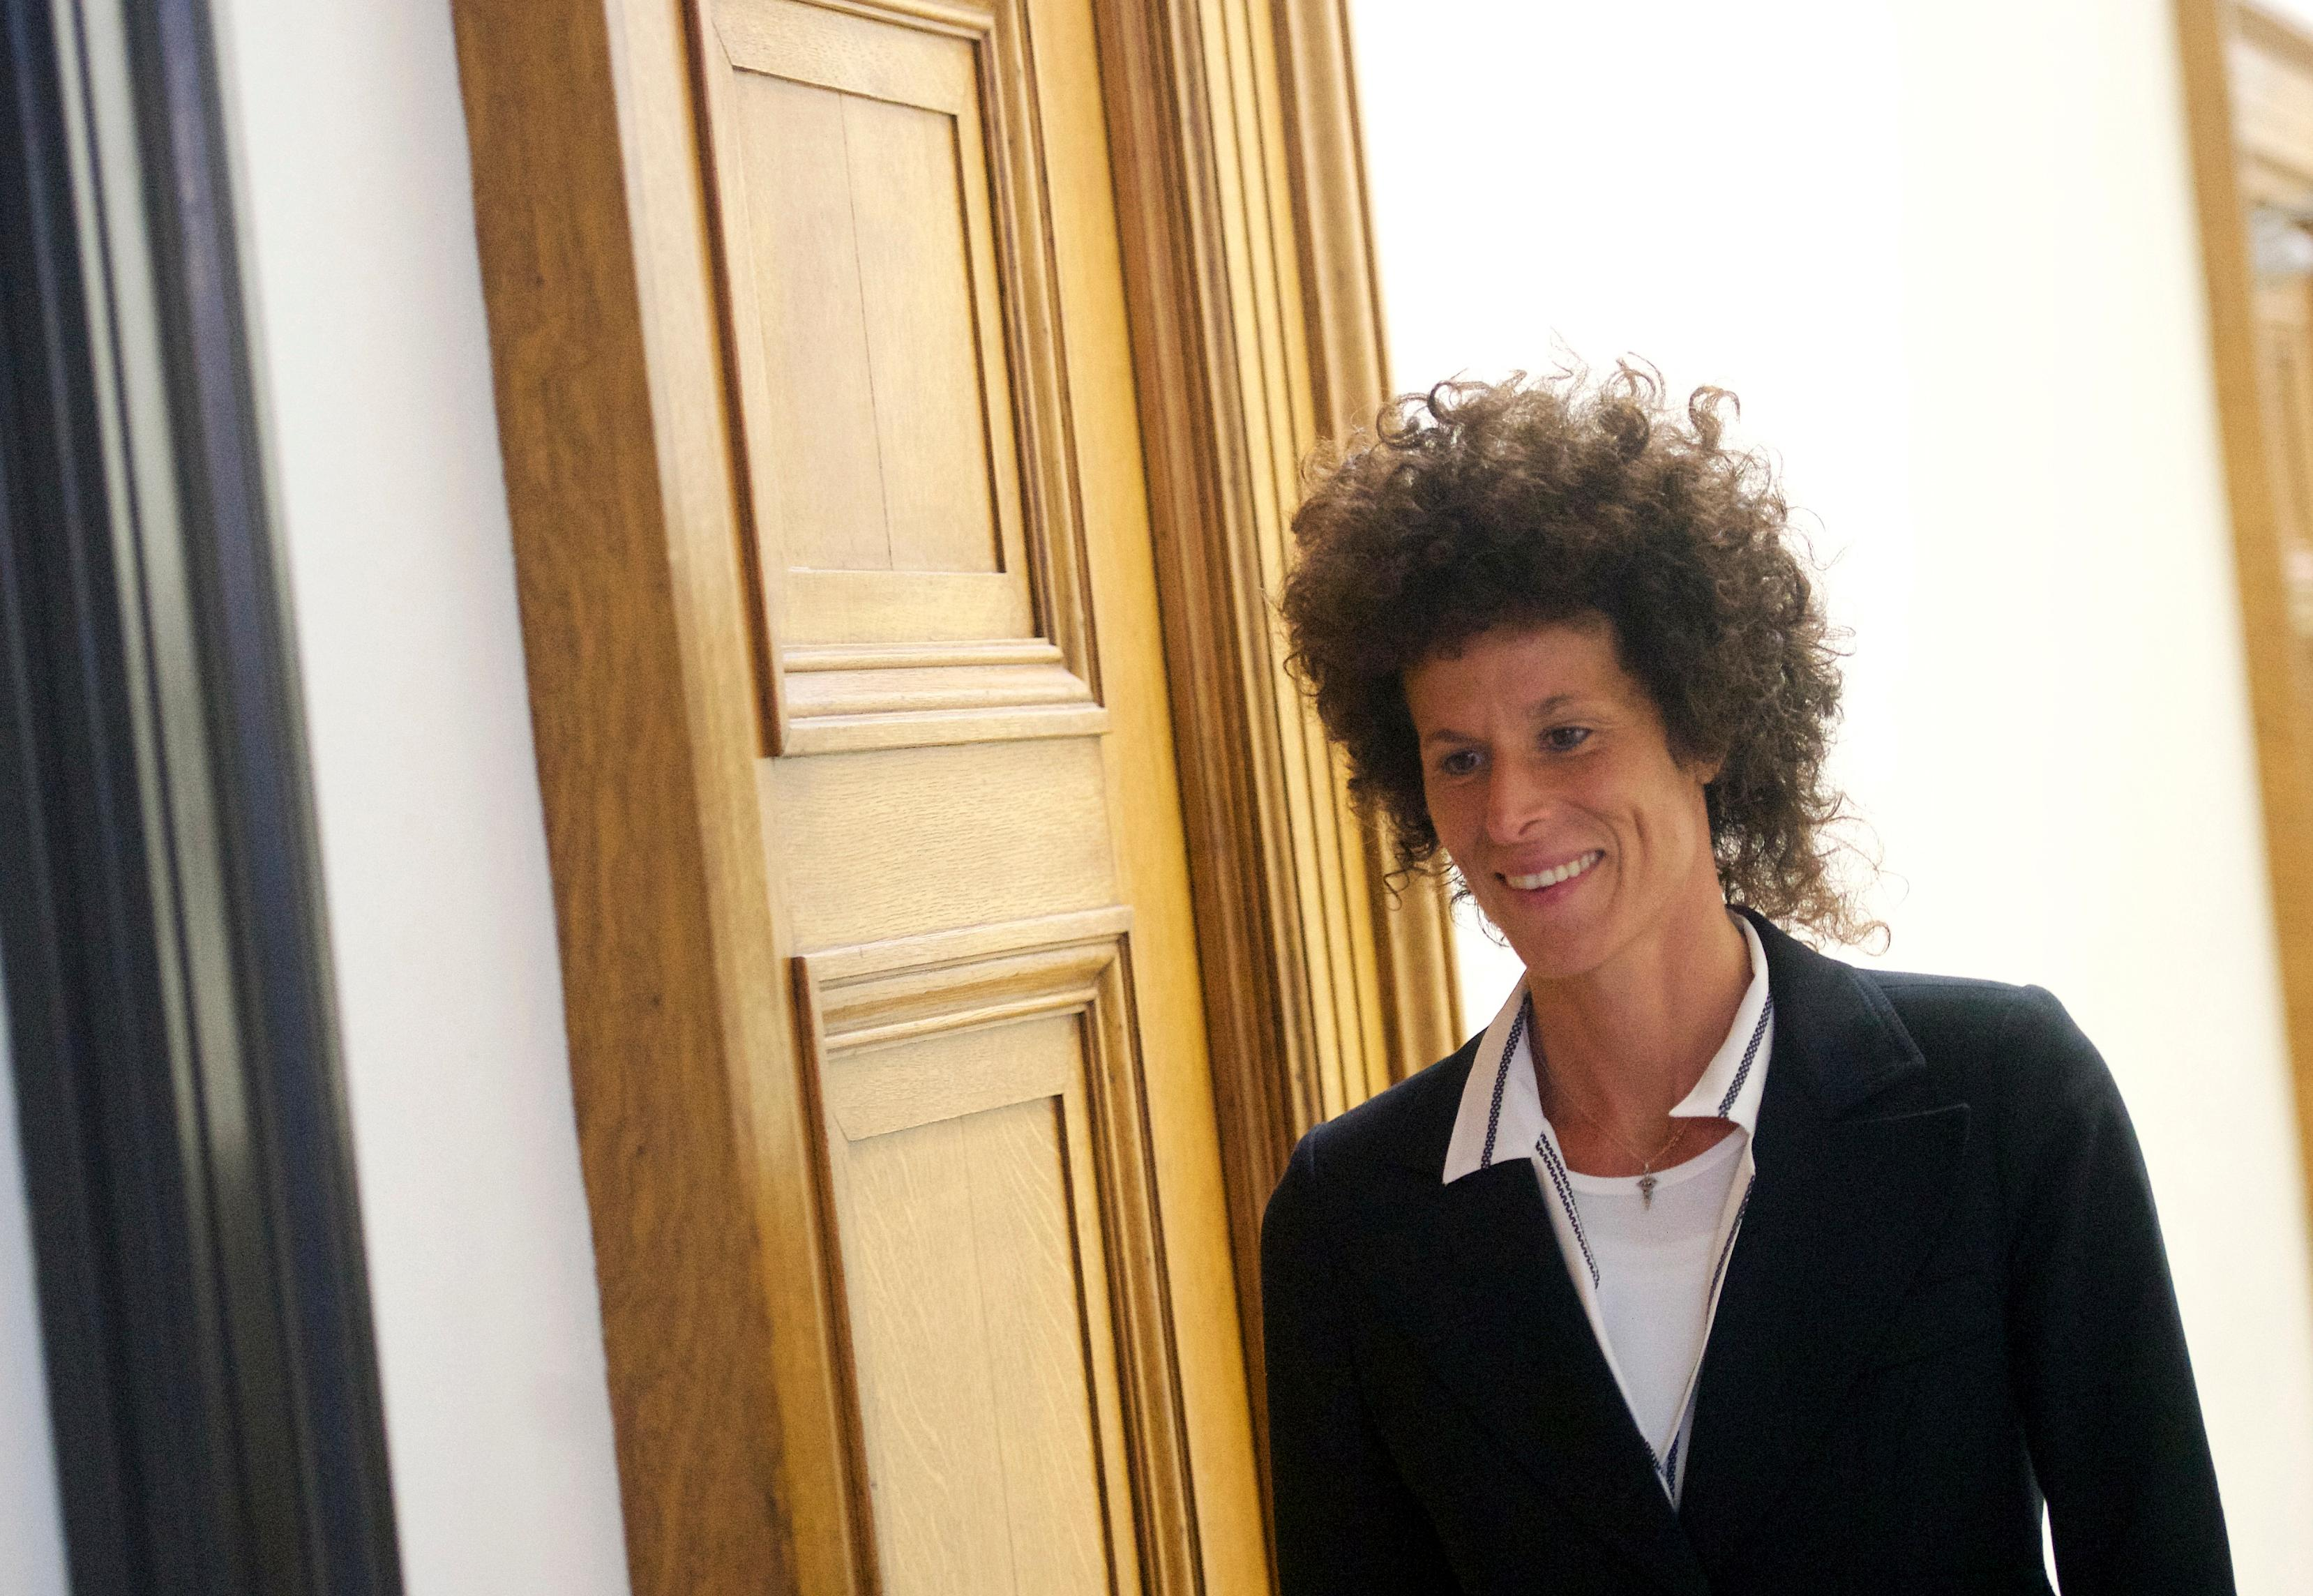 Andrea Constand exits the courtroom during jury deliberations in Bill Cosby's his sexual assault trial at the Montgomery County Courthouse in Norristown, Pa., Wednesday, June 14, 2017. Cosby is accused of drugging and sexually assaulting Constand at his home outside Philadelphia in 2004. (Mark Makela/Pool Photo via AP)